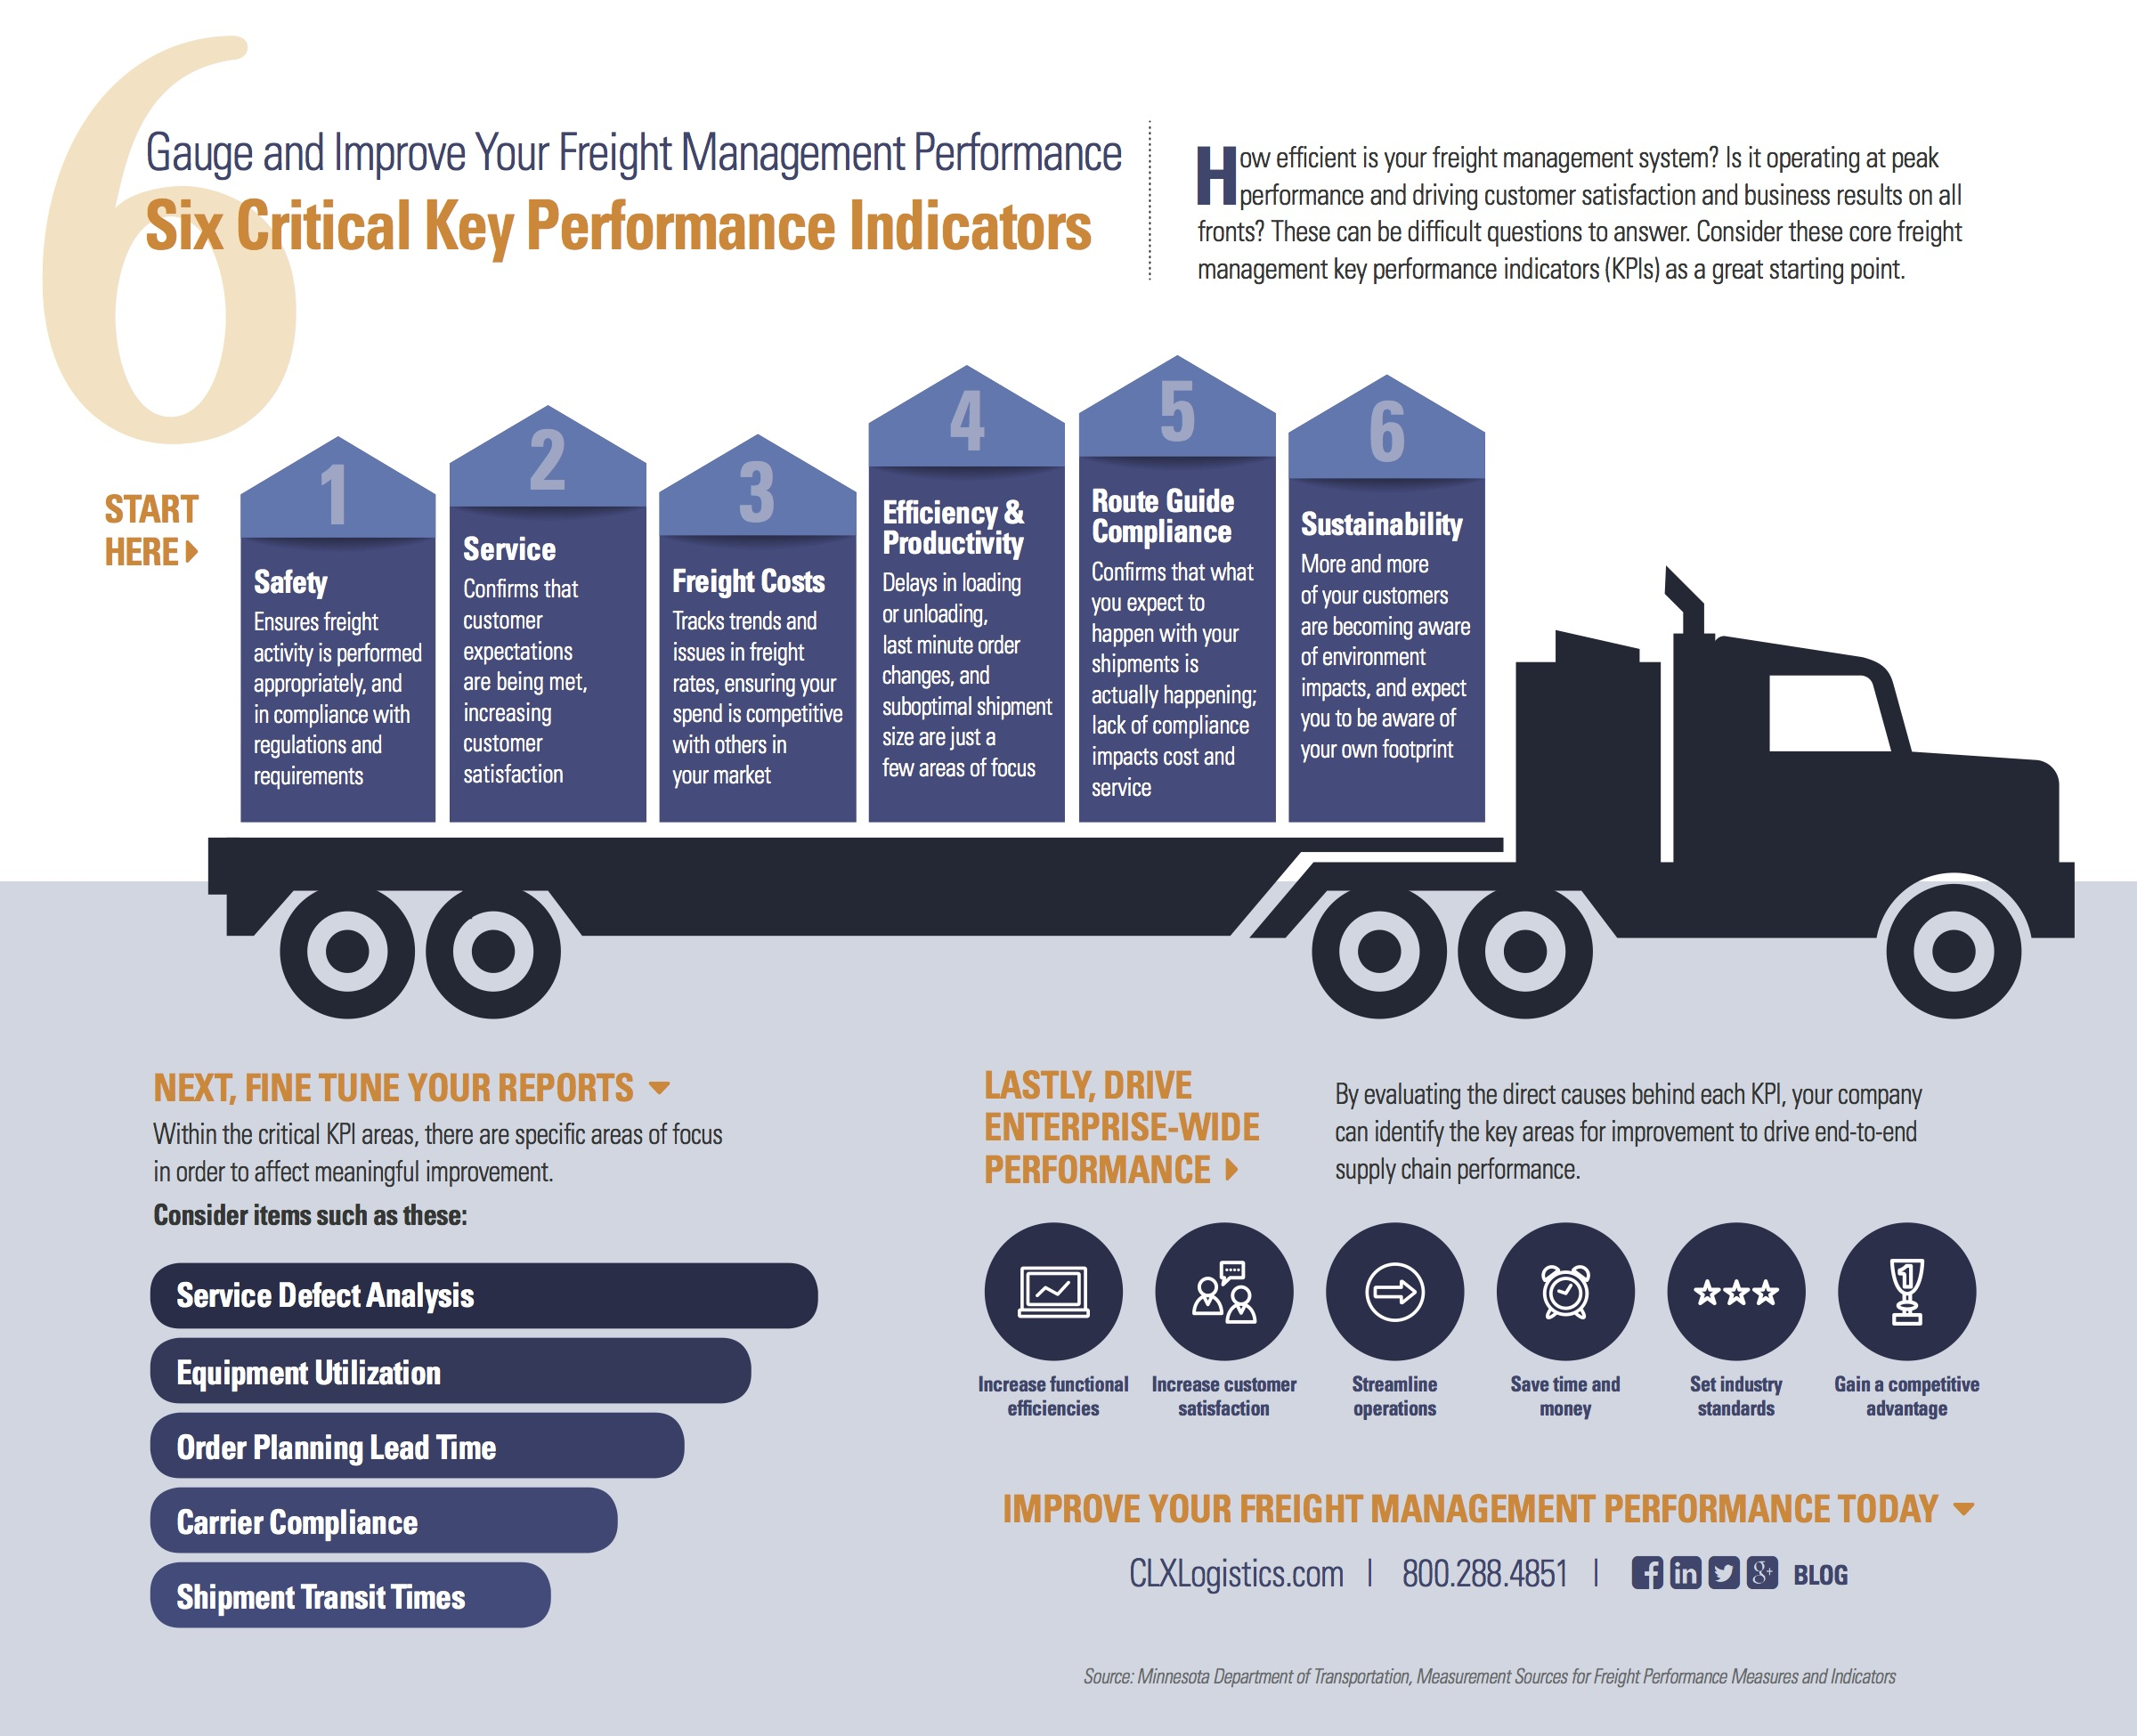 Gauge and Improve Your Freight Management Performance: Six